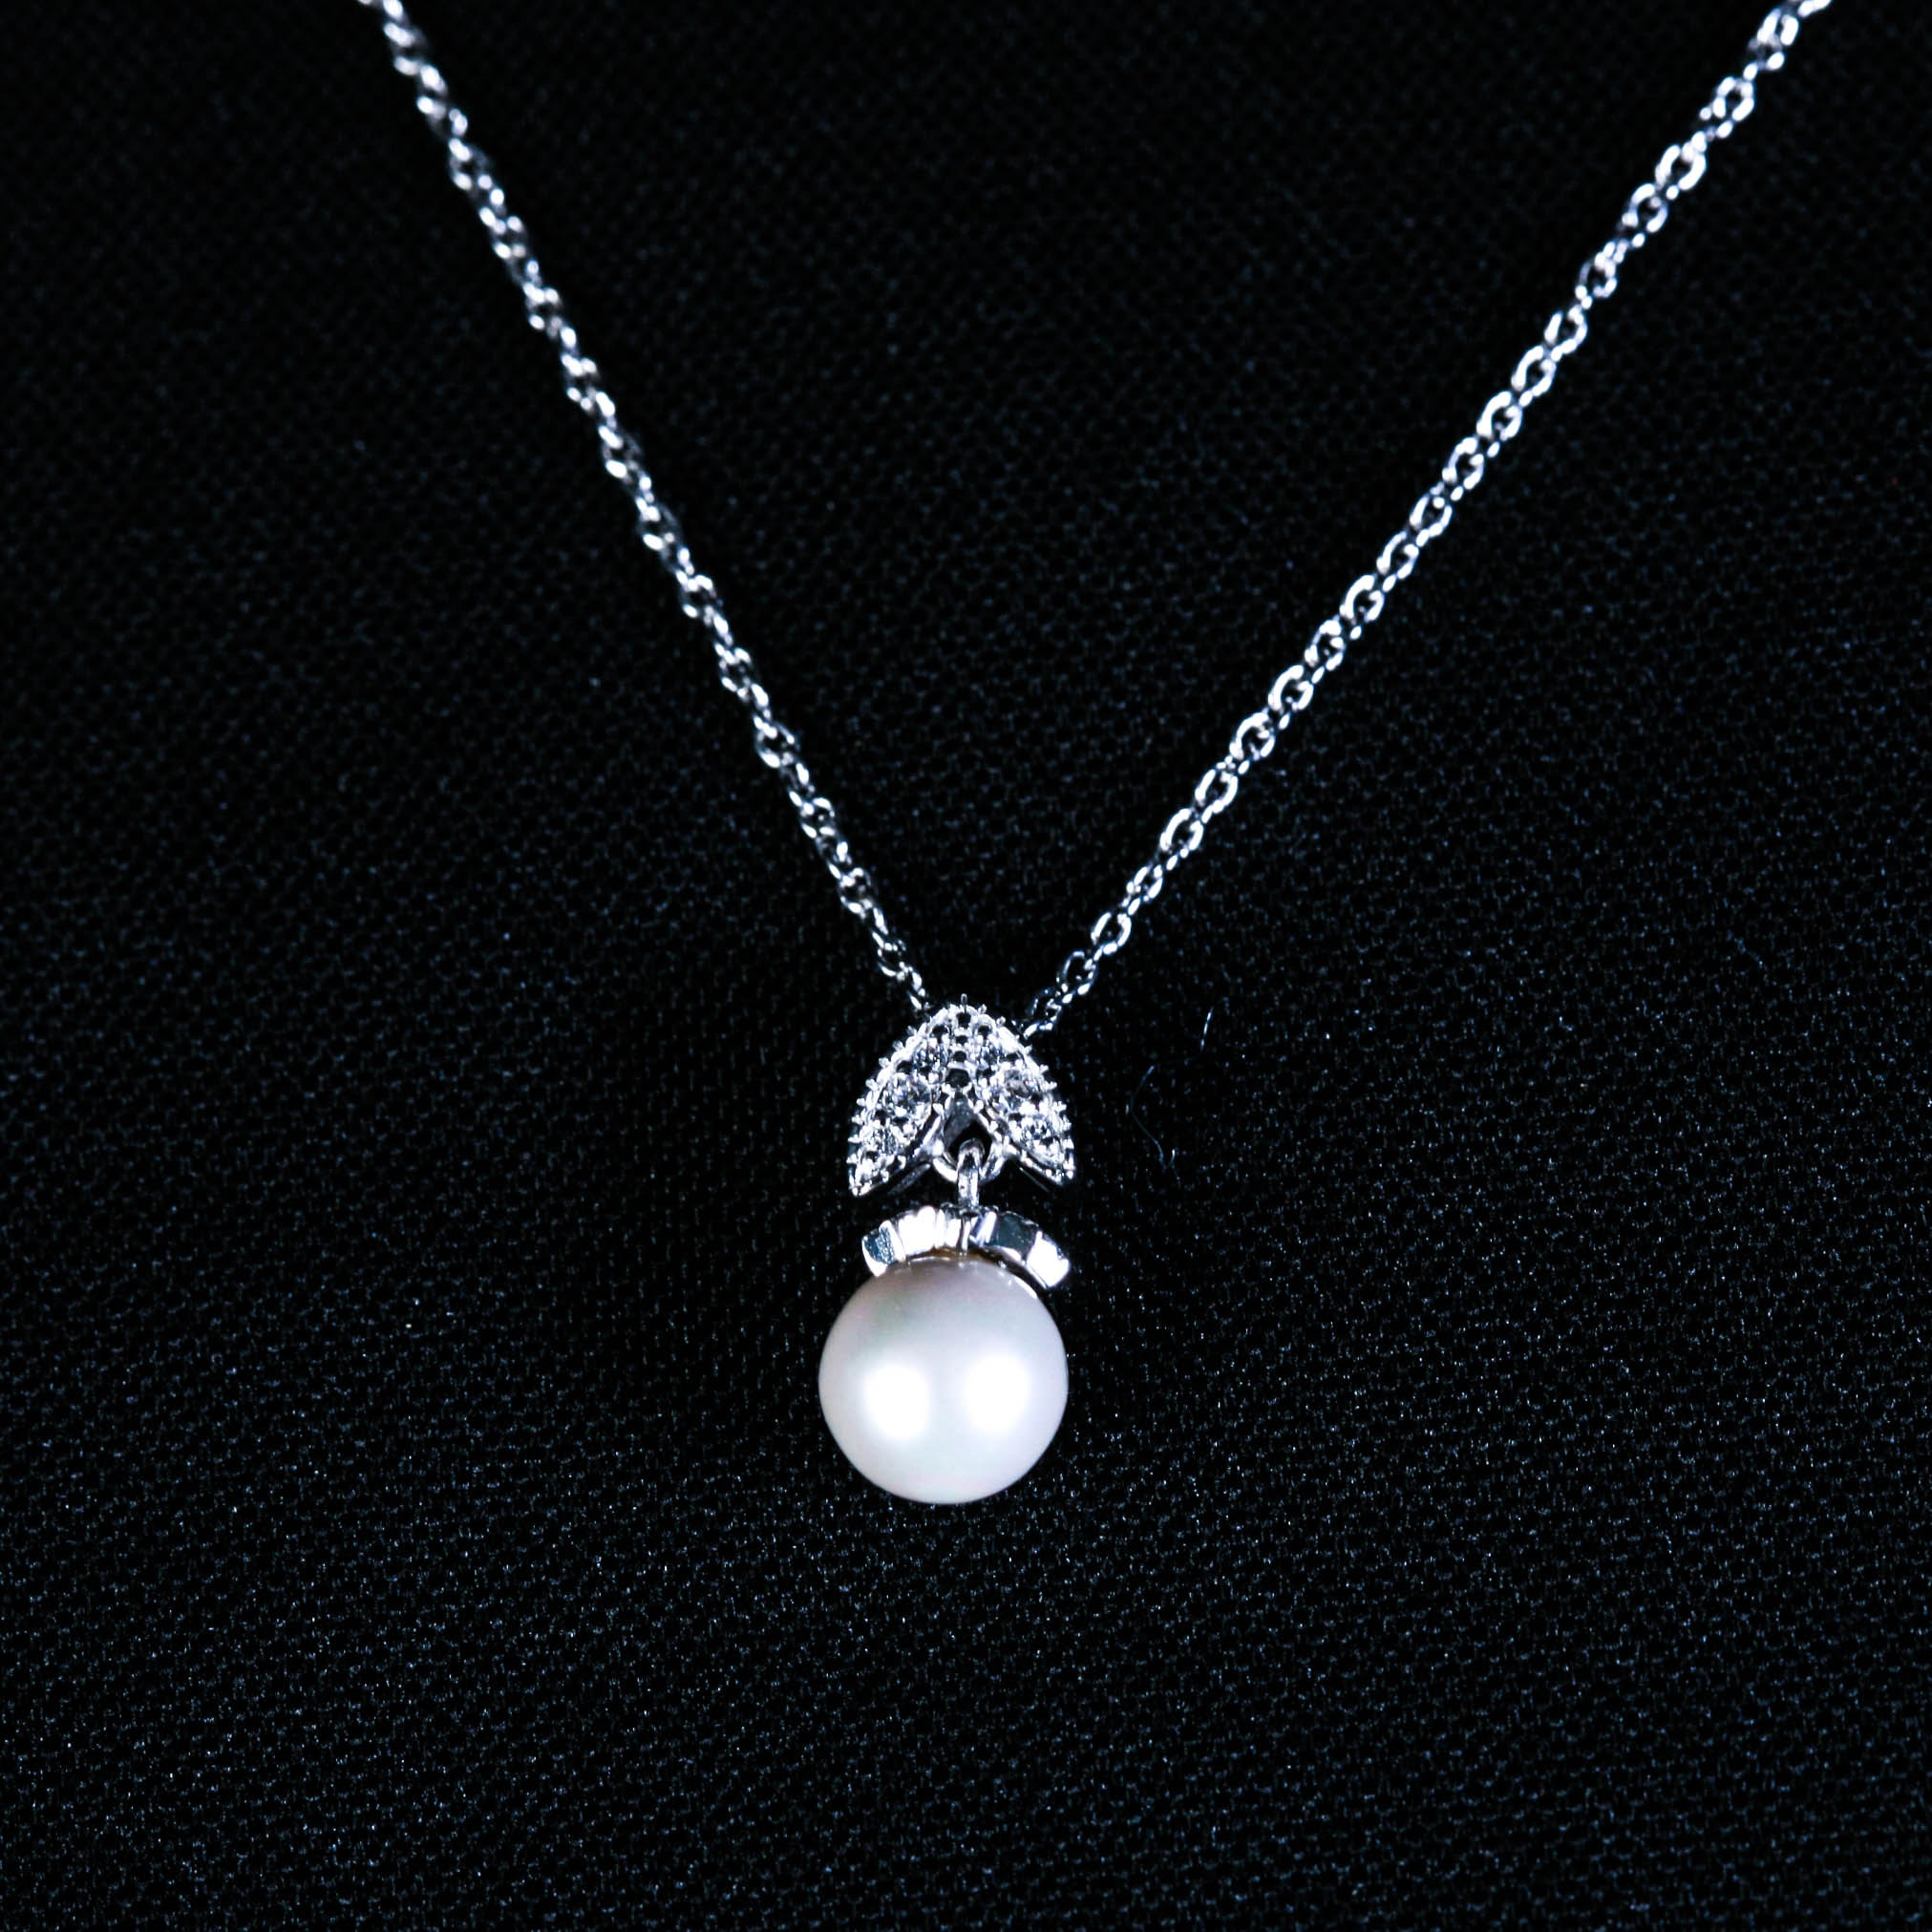 sterling silver pearl and pendant necklace ebth